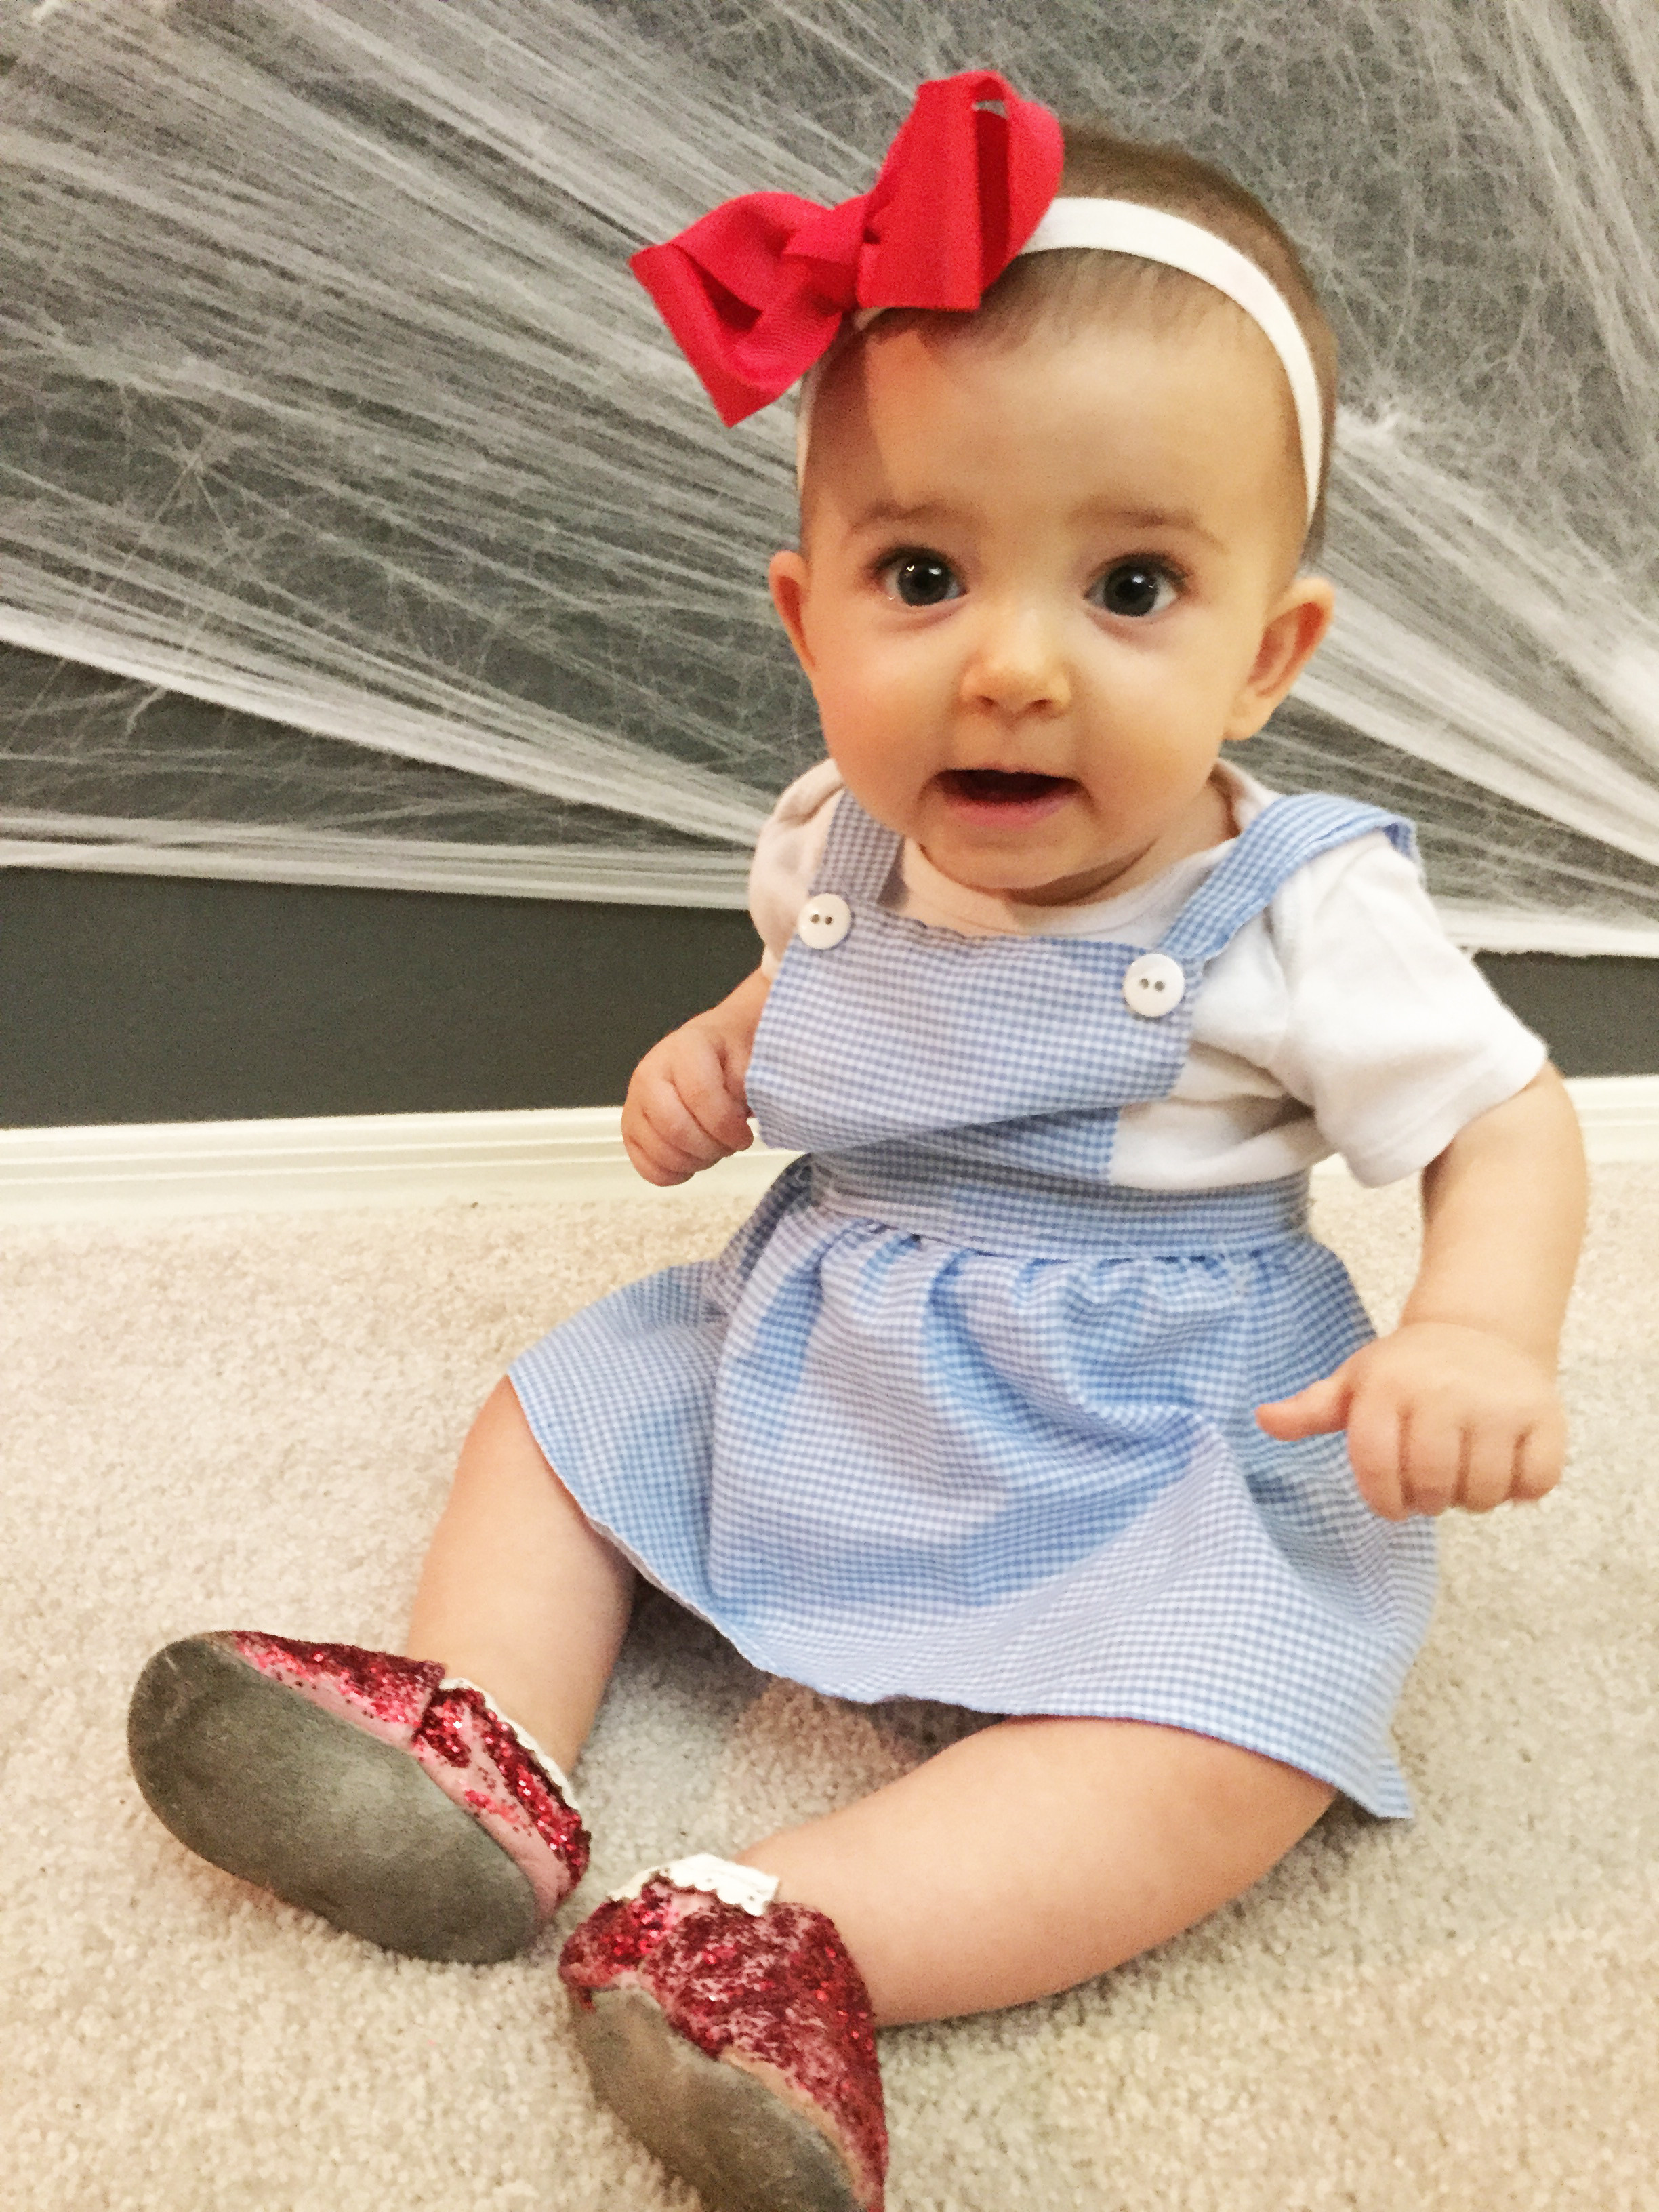 Best ideas about DIY Infant Costume . Save or Pin DIY Family Halloween Costume Ideas A Happier Home Now.